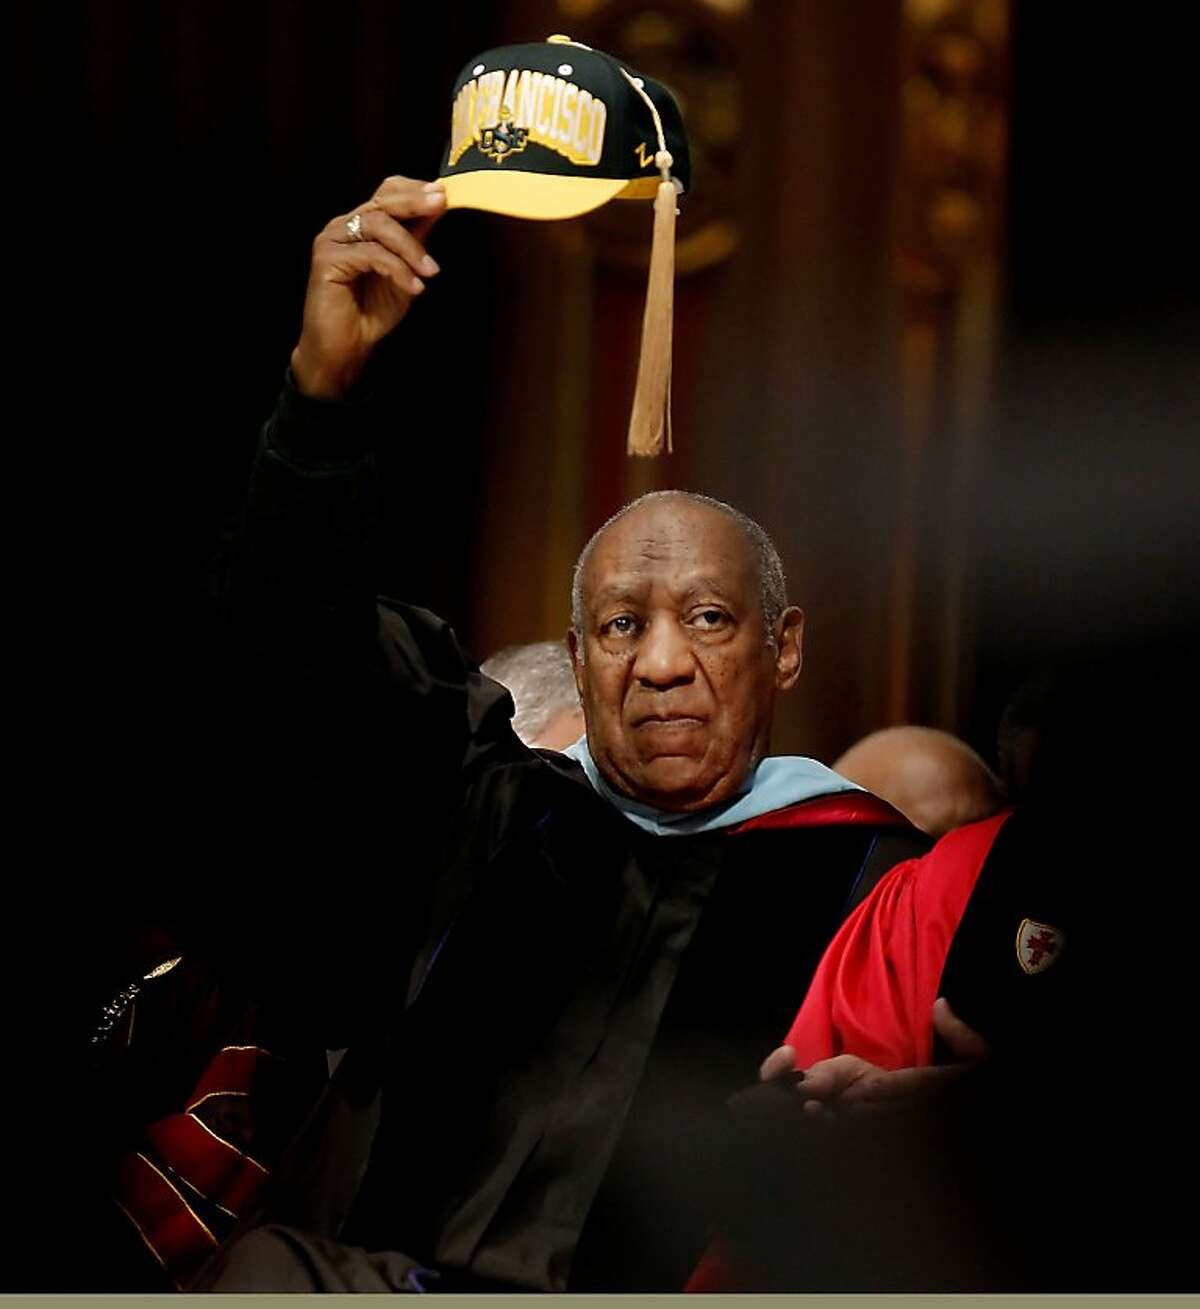 Comedian and educator, Bill Cosby, raisces his cap high as he prepares to deliver the commencement speech to the graduating students of Arts and Social Sciences at the University of San Francisco, on Friday May 18, 2012, at St. Ignatius Church in San Francisco,Ca.